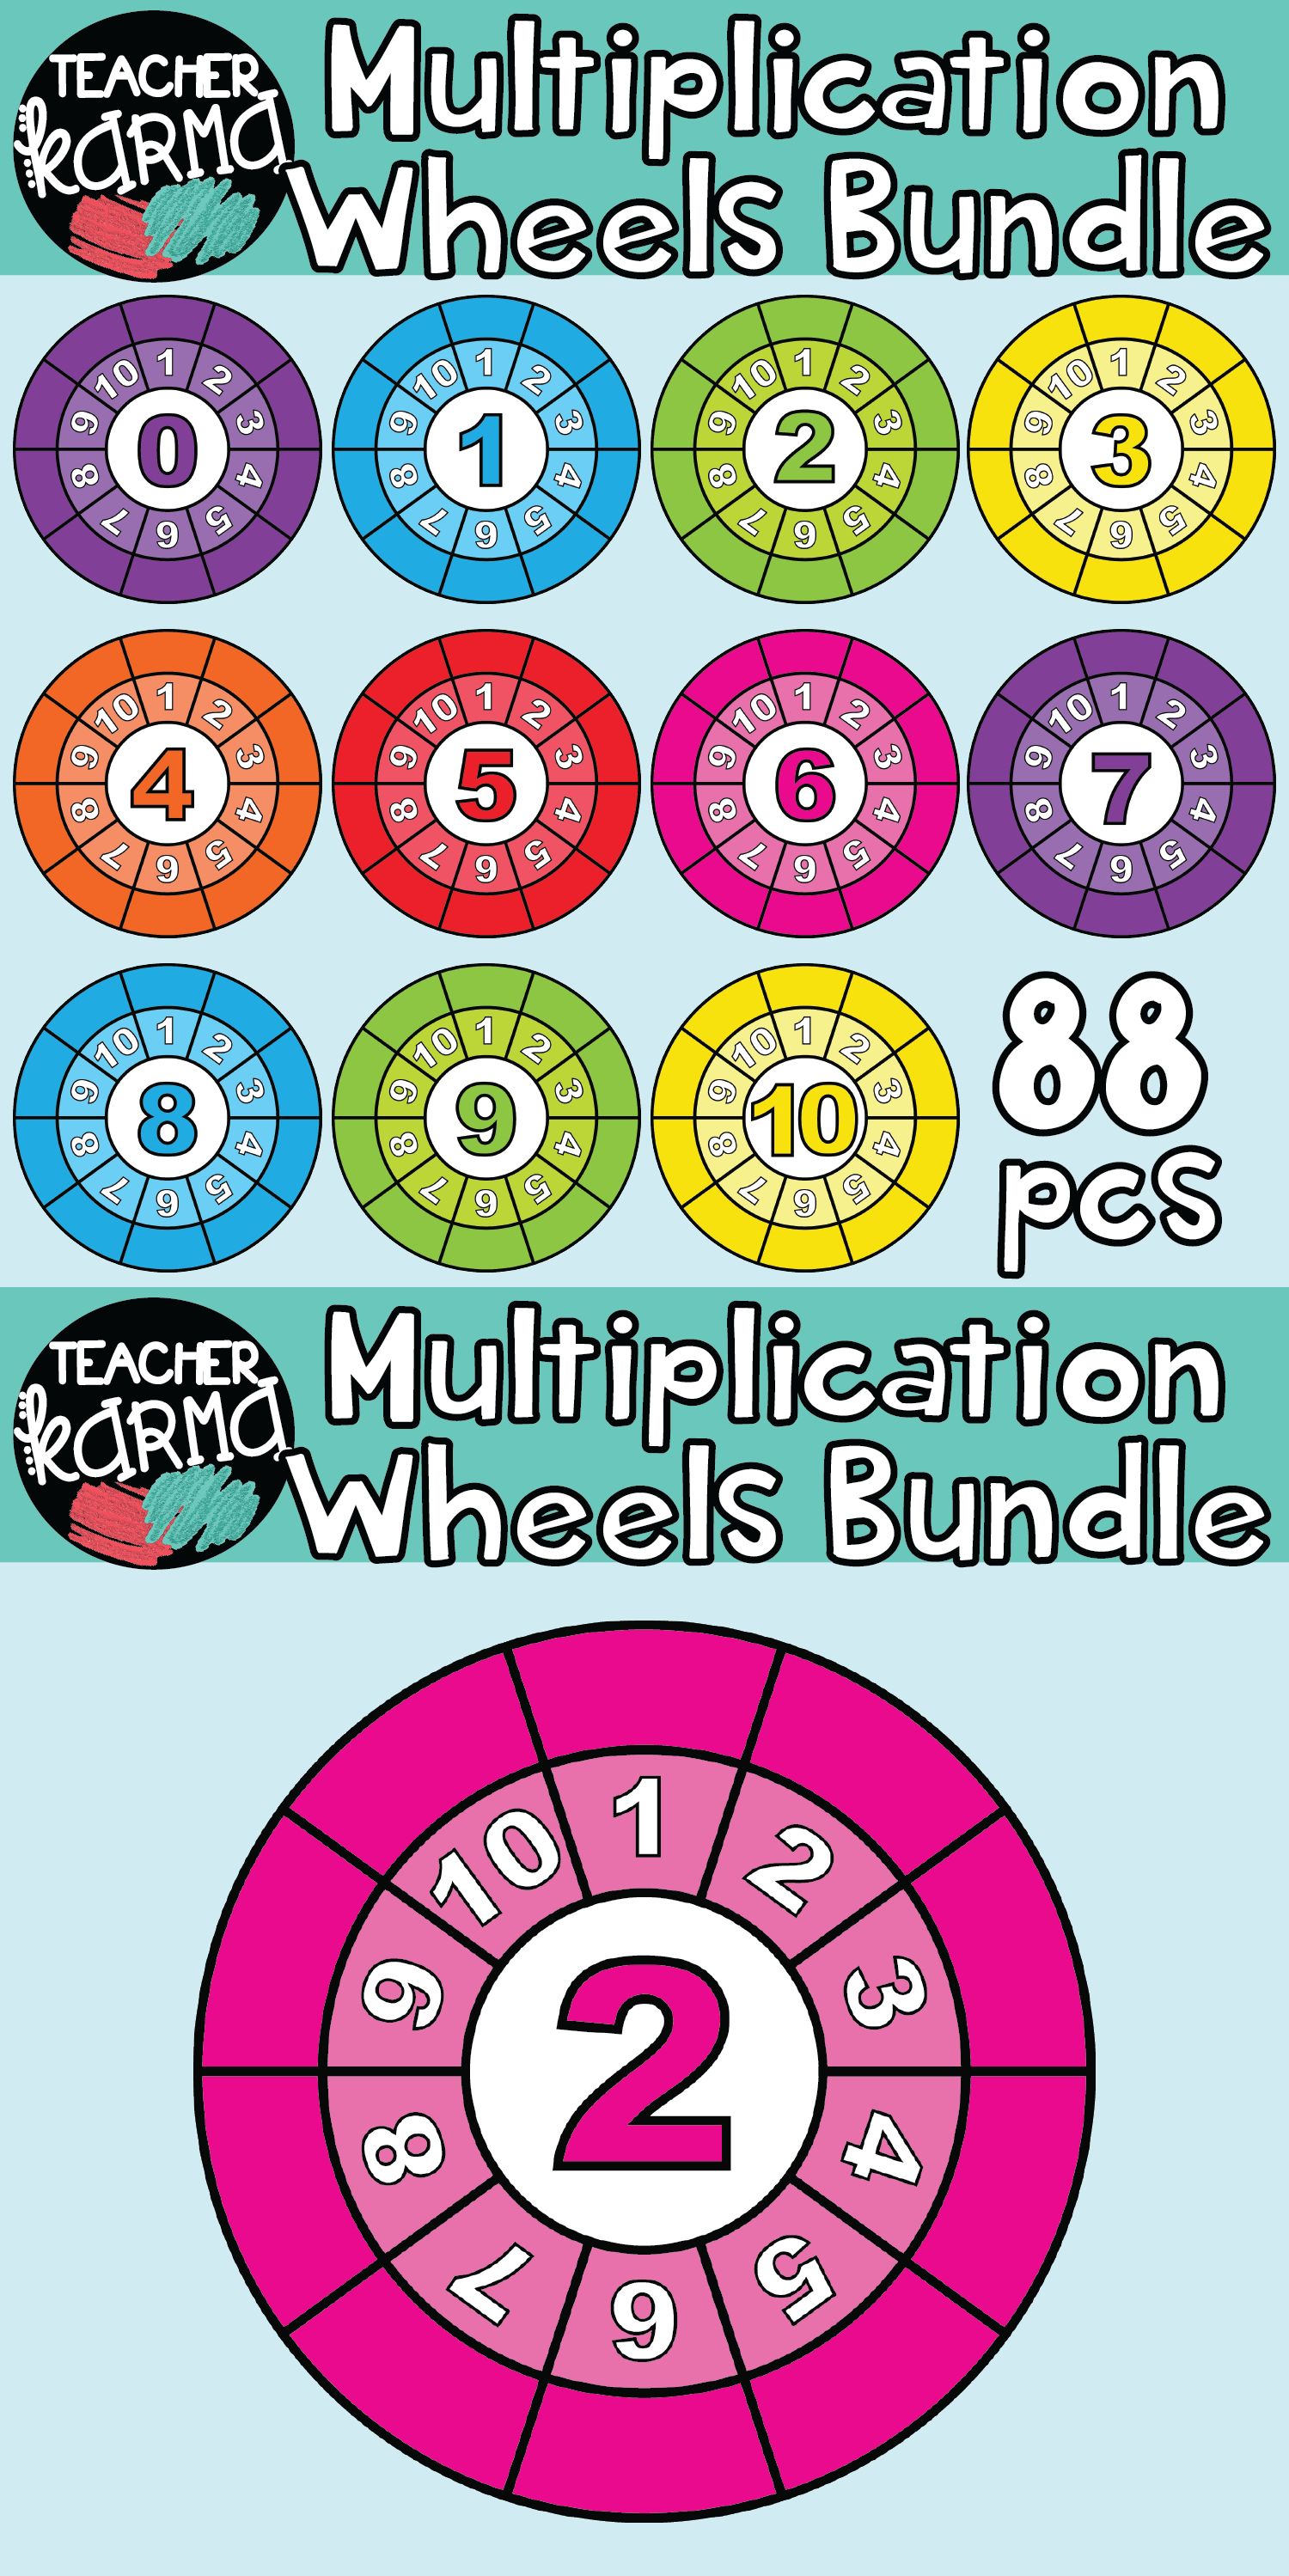 Multiplication Wheels Math Clipart With Images